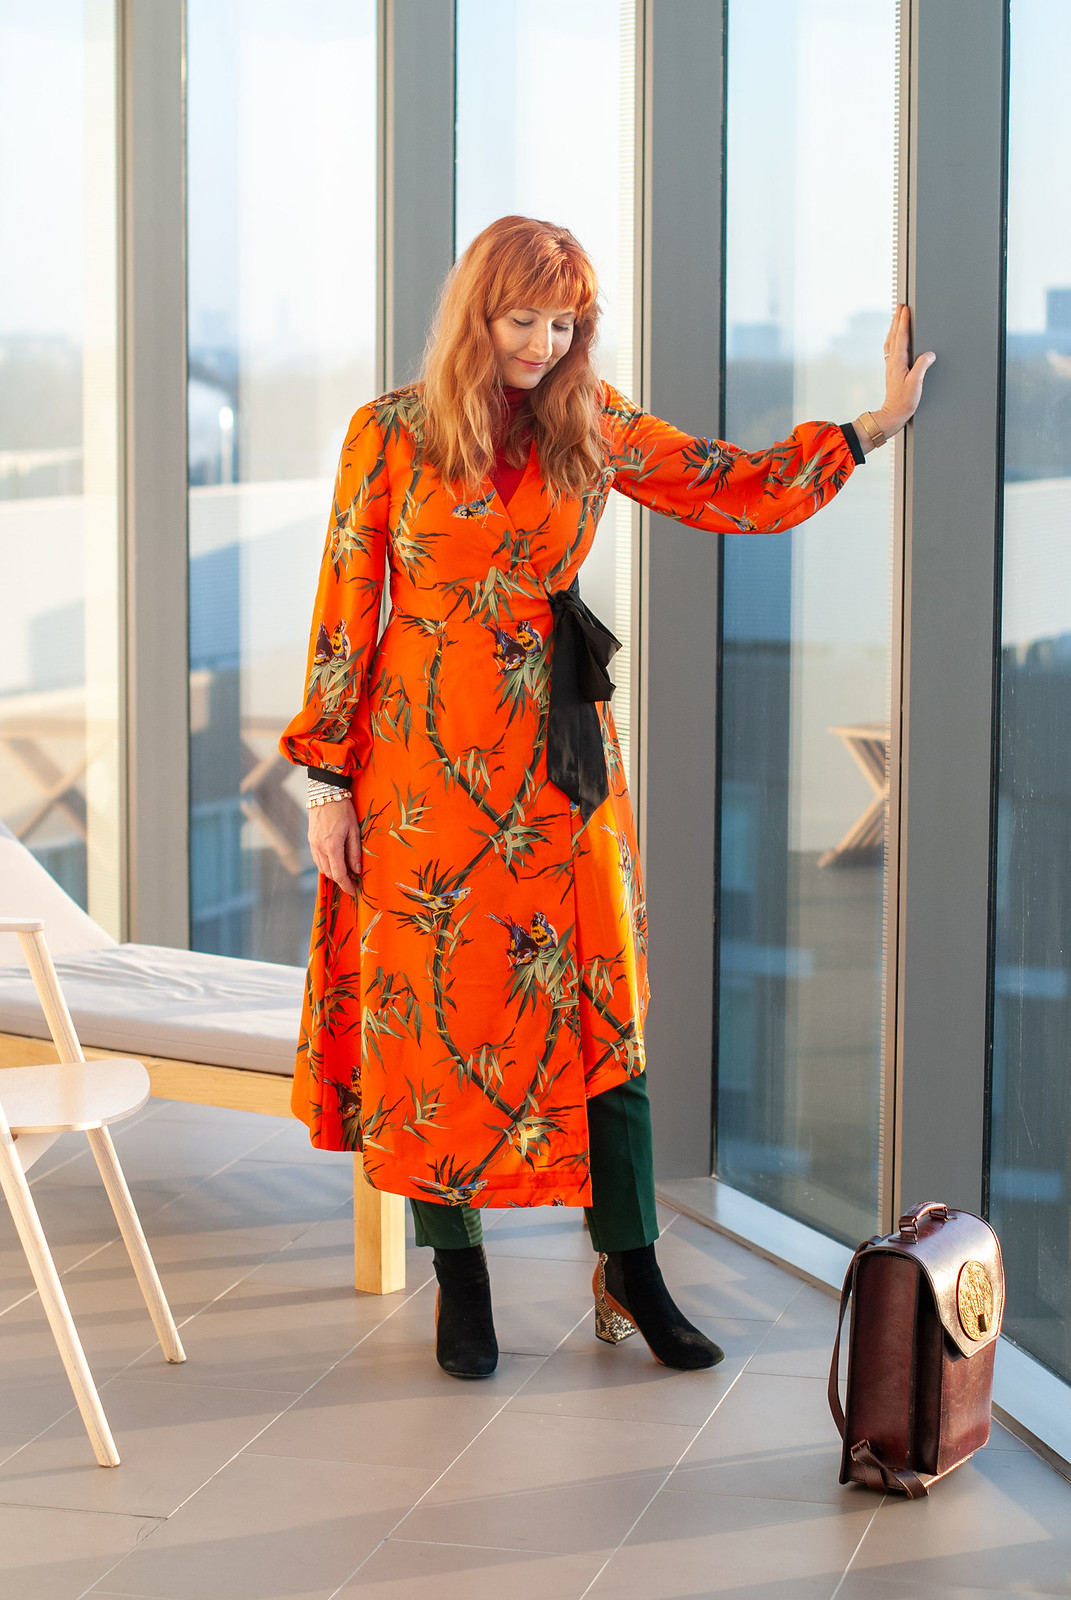 Layering a Midi Dress and Trousers Under a Tailored Coat \ orange floral midi dress \ navy pinstripe tailored coat \ emerald green trousers \ snakeskin and suede ankle boots \ Beara Beara leather backpack | Not Dressed As Lamb, over 40 style